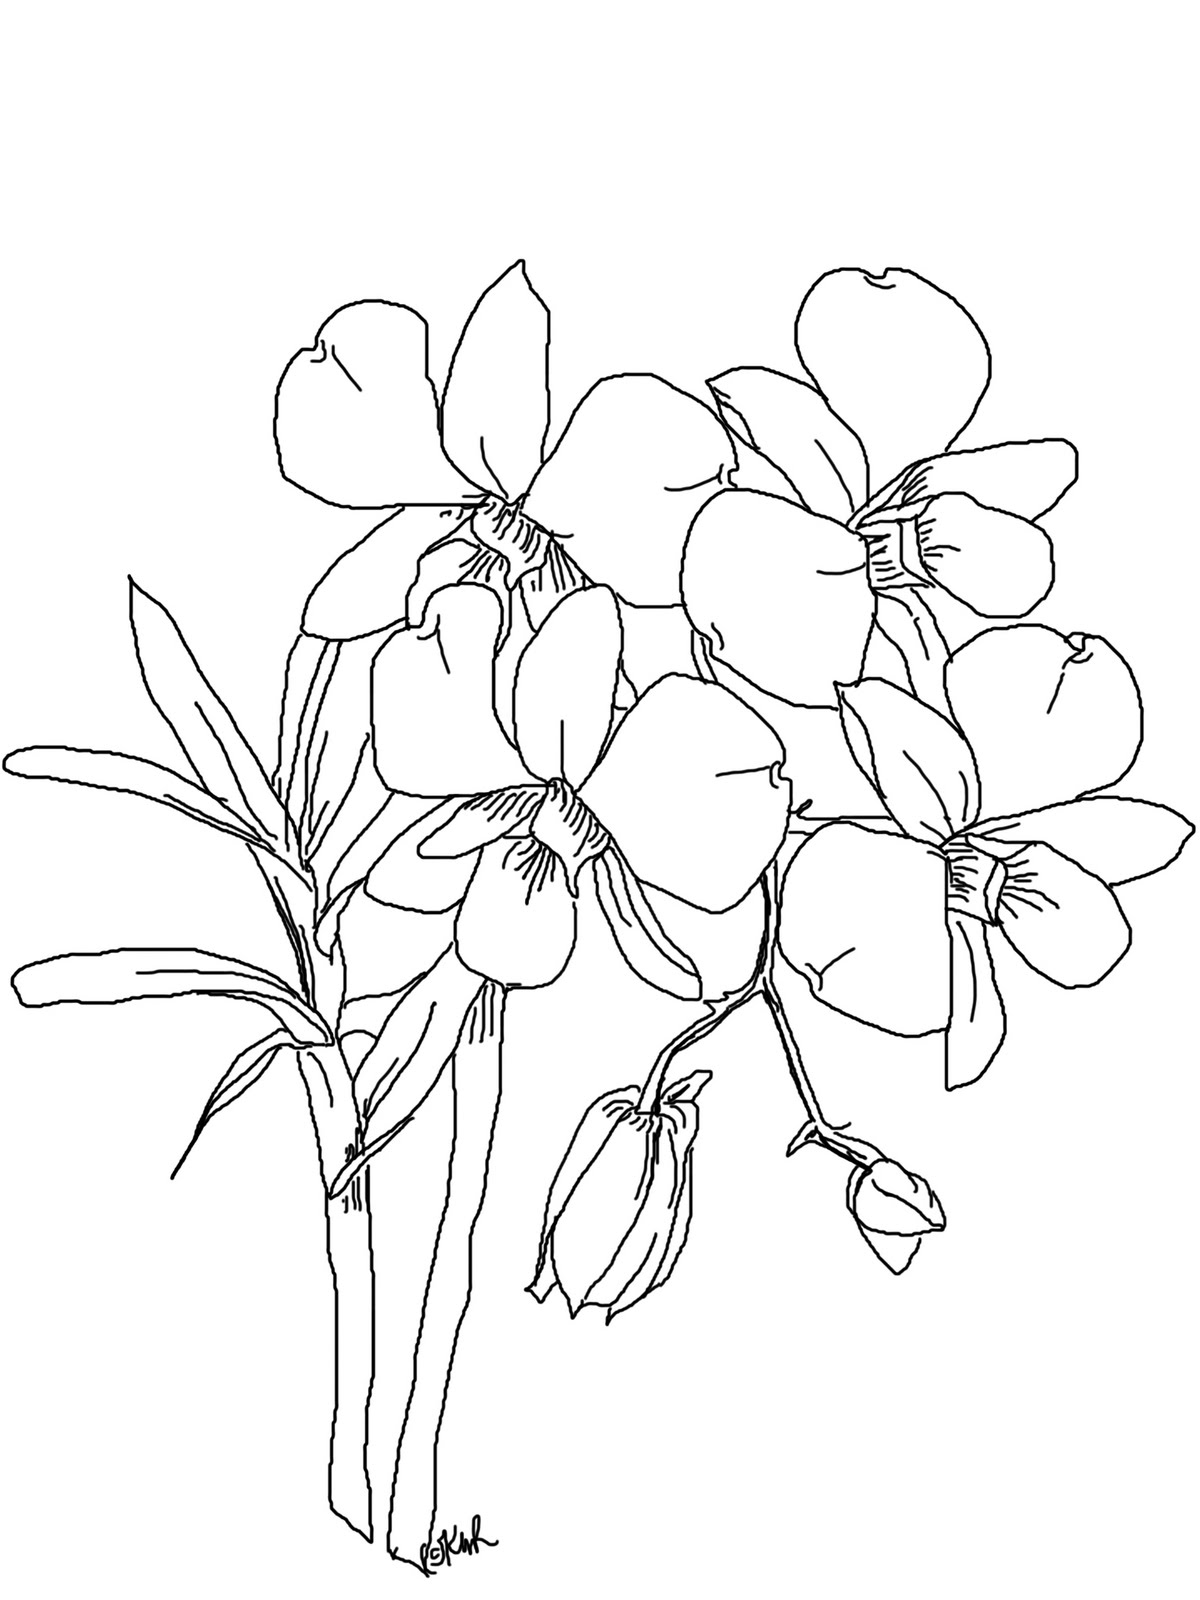 Orchid clipart sketch Easy Orchid Drawing gousicteco: Images